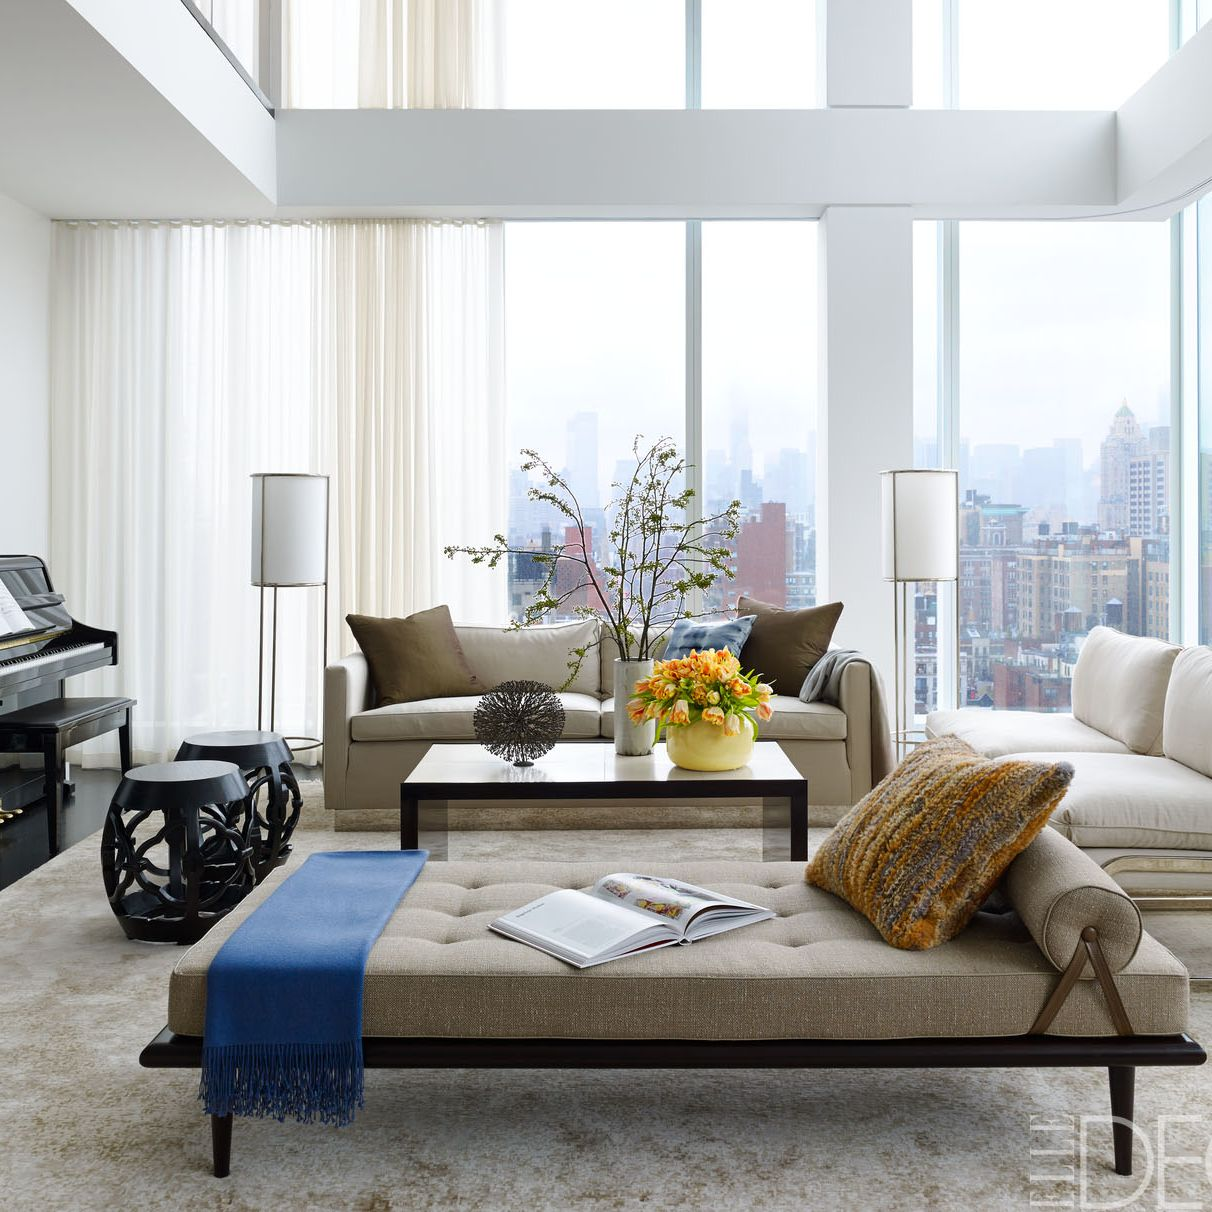 <p>In the living room of David and Laurie Rosenblatt's Upper East Side Manhattan duplex, which was designed by architect S. Russell Groves, the daybed, covered in an Hermès fabric, and sofa, in a Great Plains fabric, are custom made, the Milo Baughman-style chairs are covered in a Great Plains linen, and the cocktail table is by Roman Thomas&#x3B; the light sculpture over the piano is by Soledad Arias, the rug is by Fort Street Studio, and the walls are painted in Benjamin Moore's Decorators White.</p>